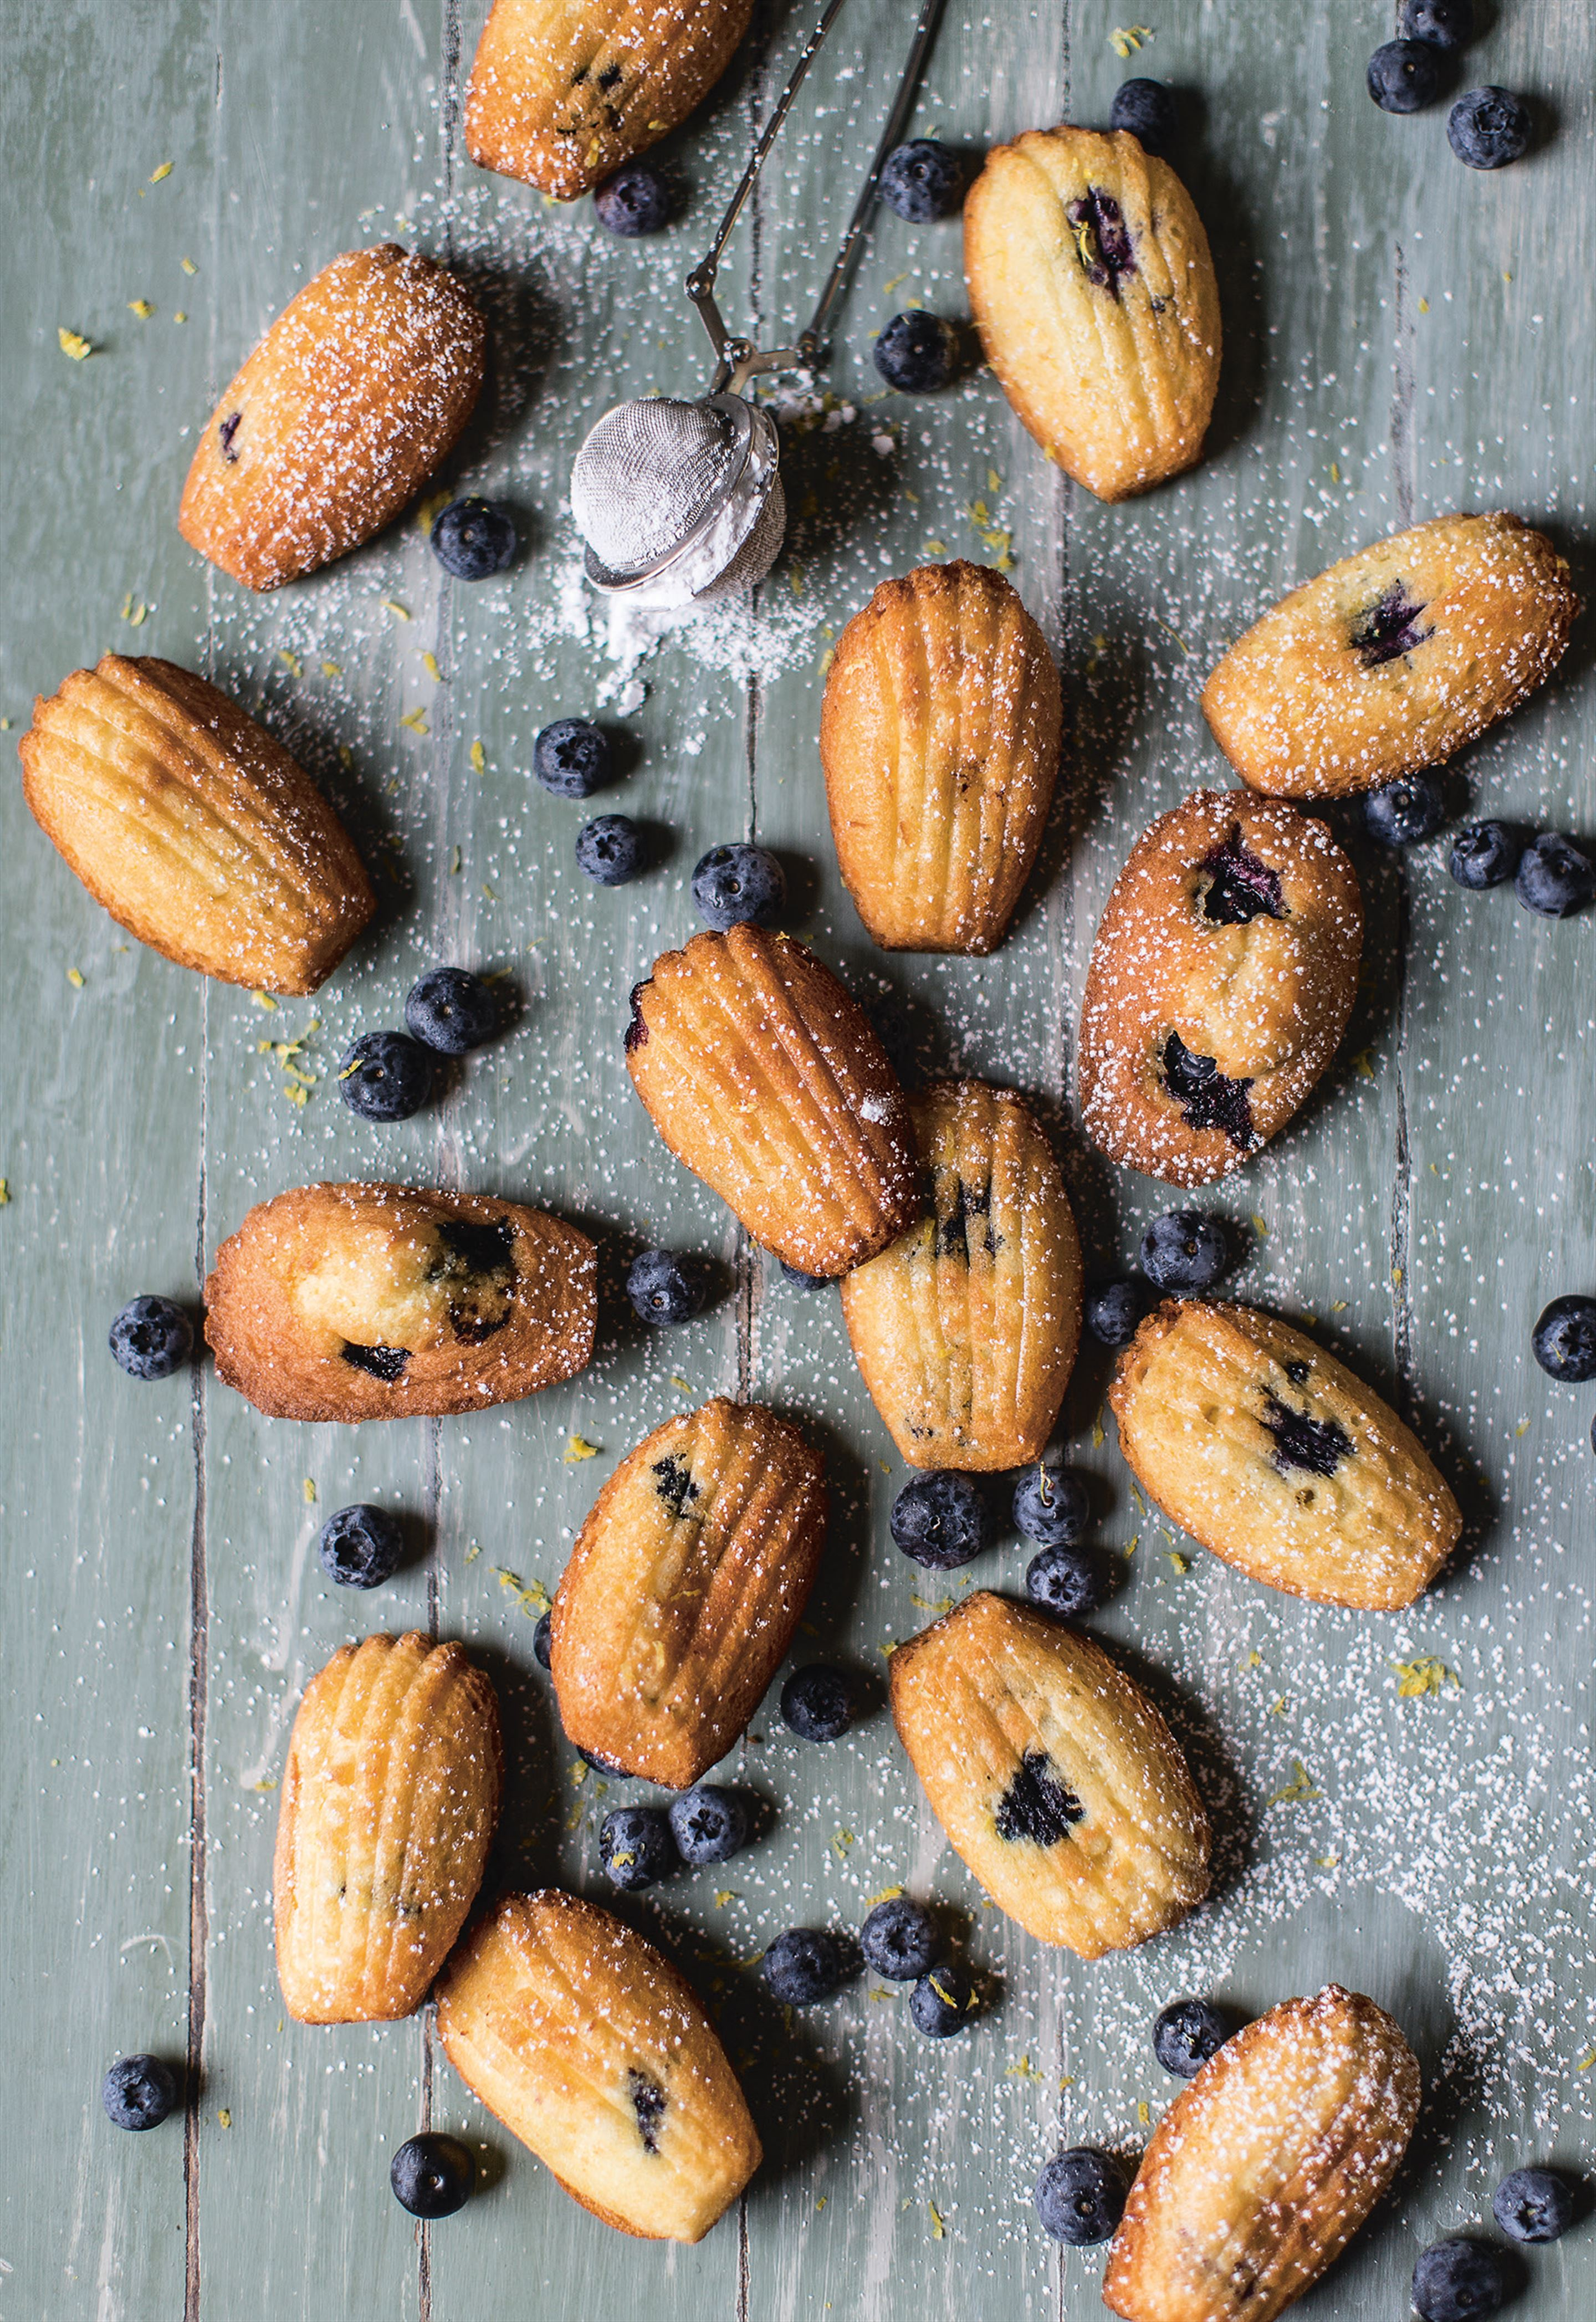 Lemon & blueberry madeleines